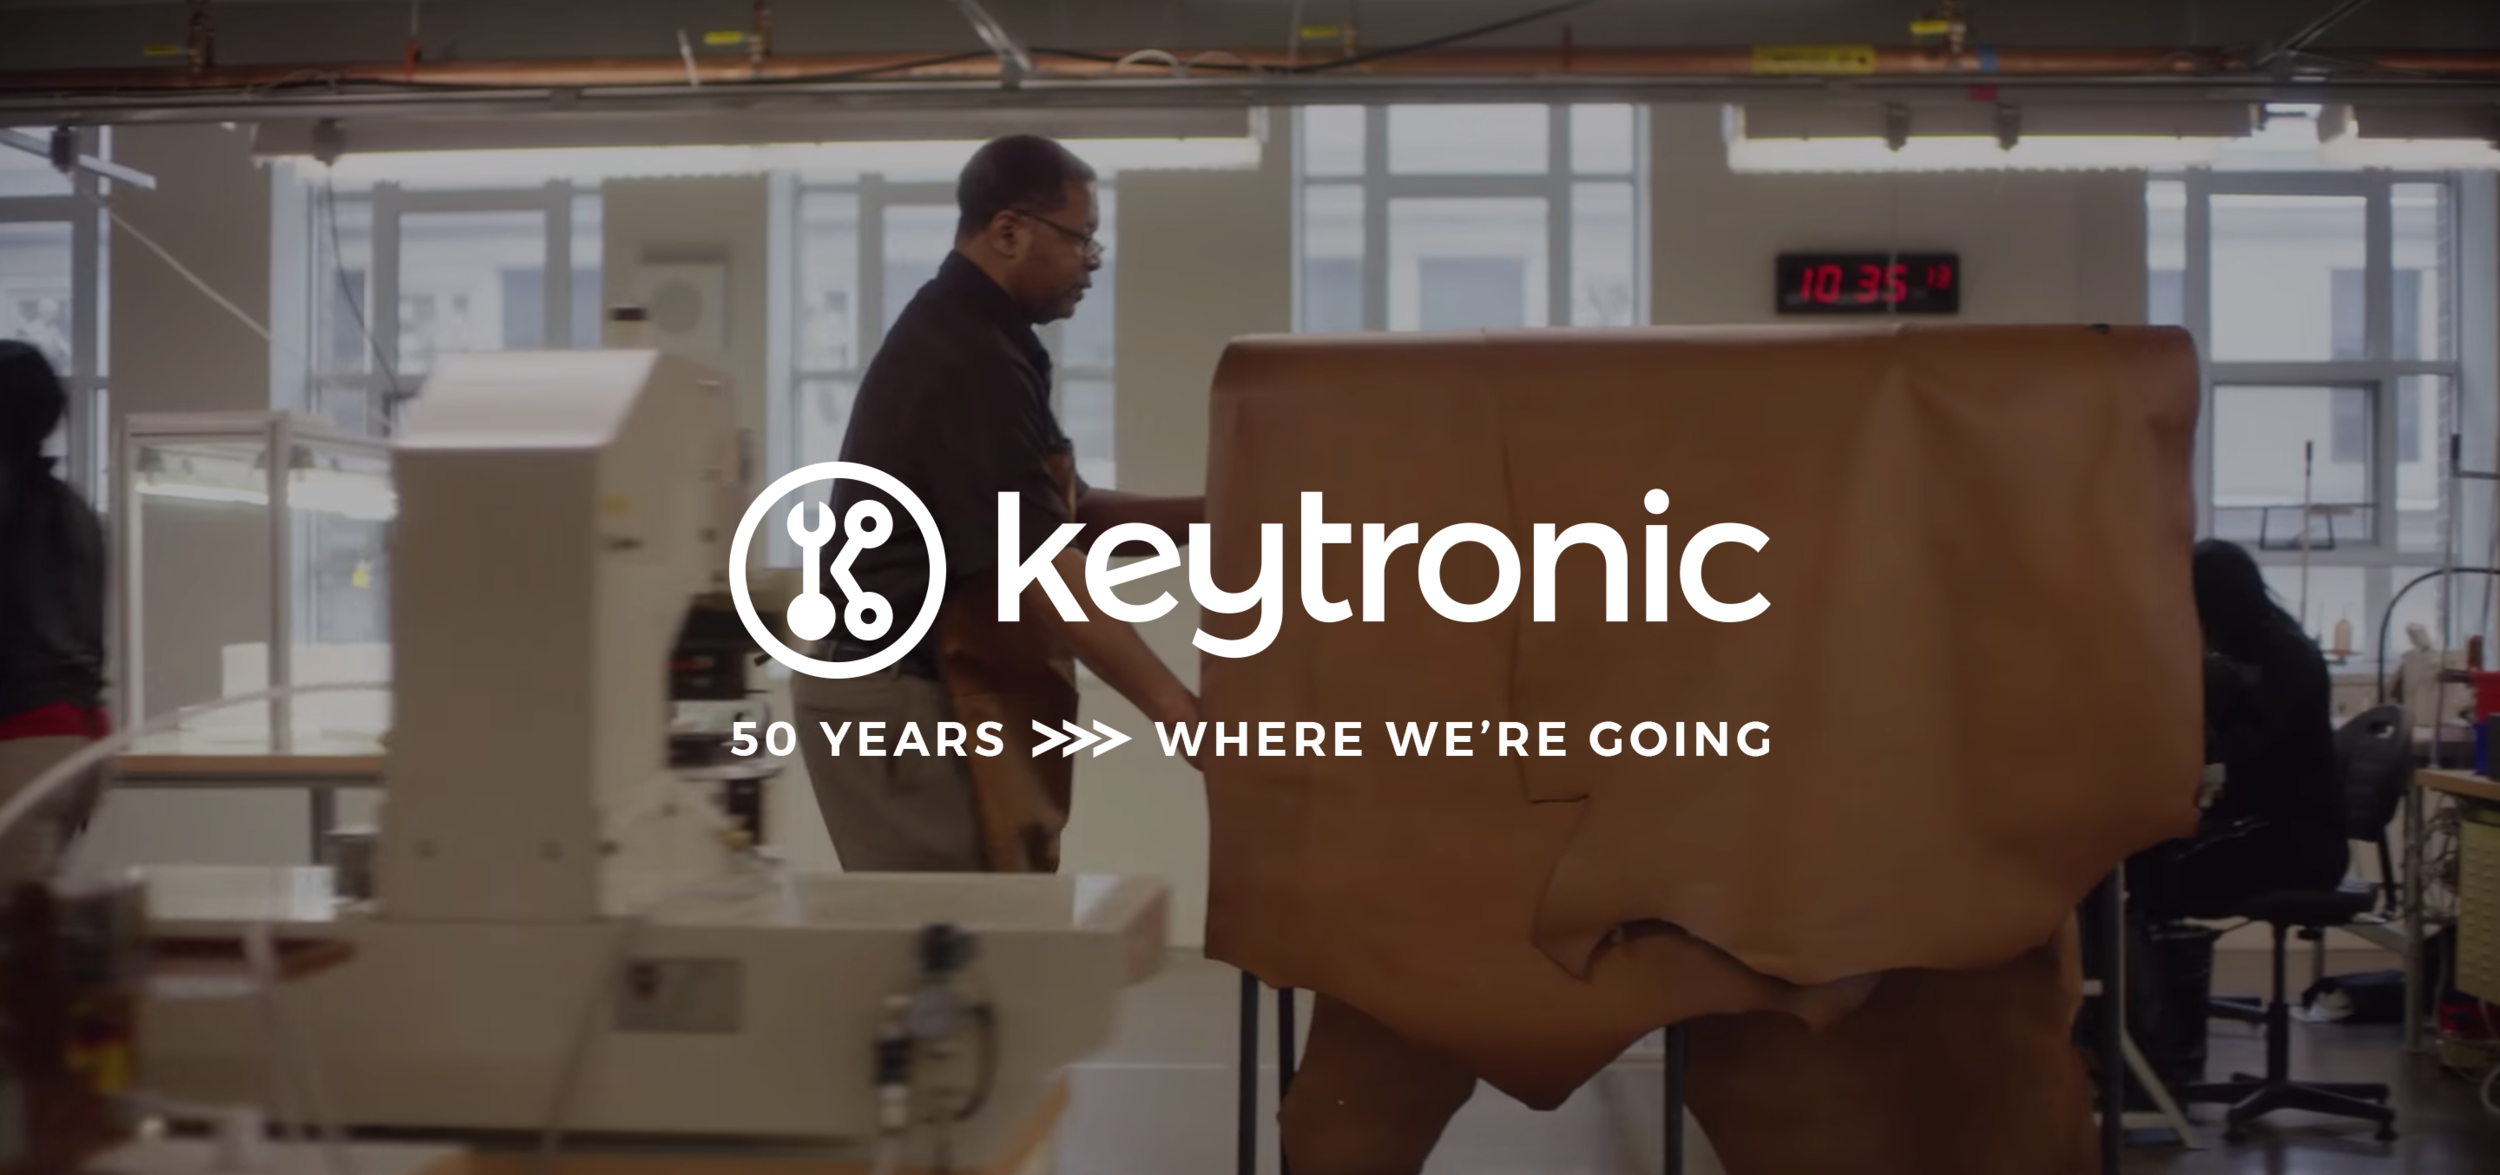 Keytronic_50Years-WhereWereGoing3.png